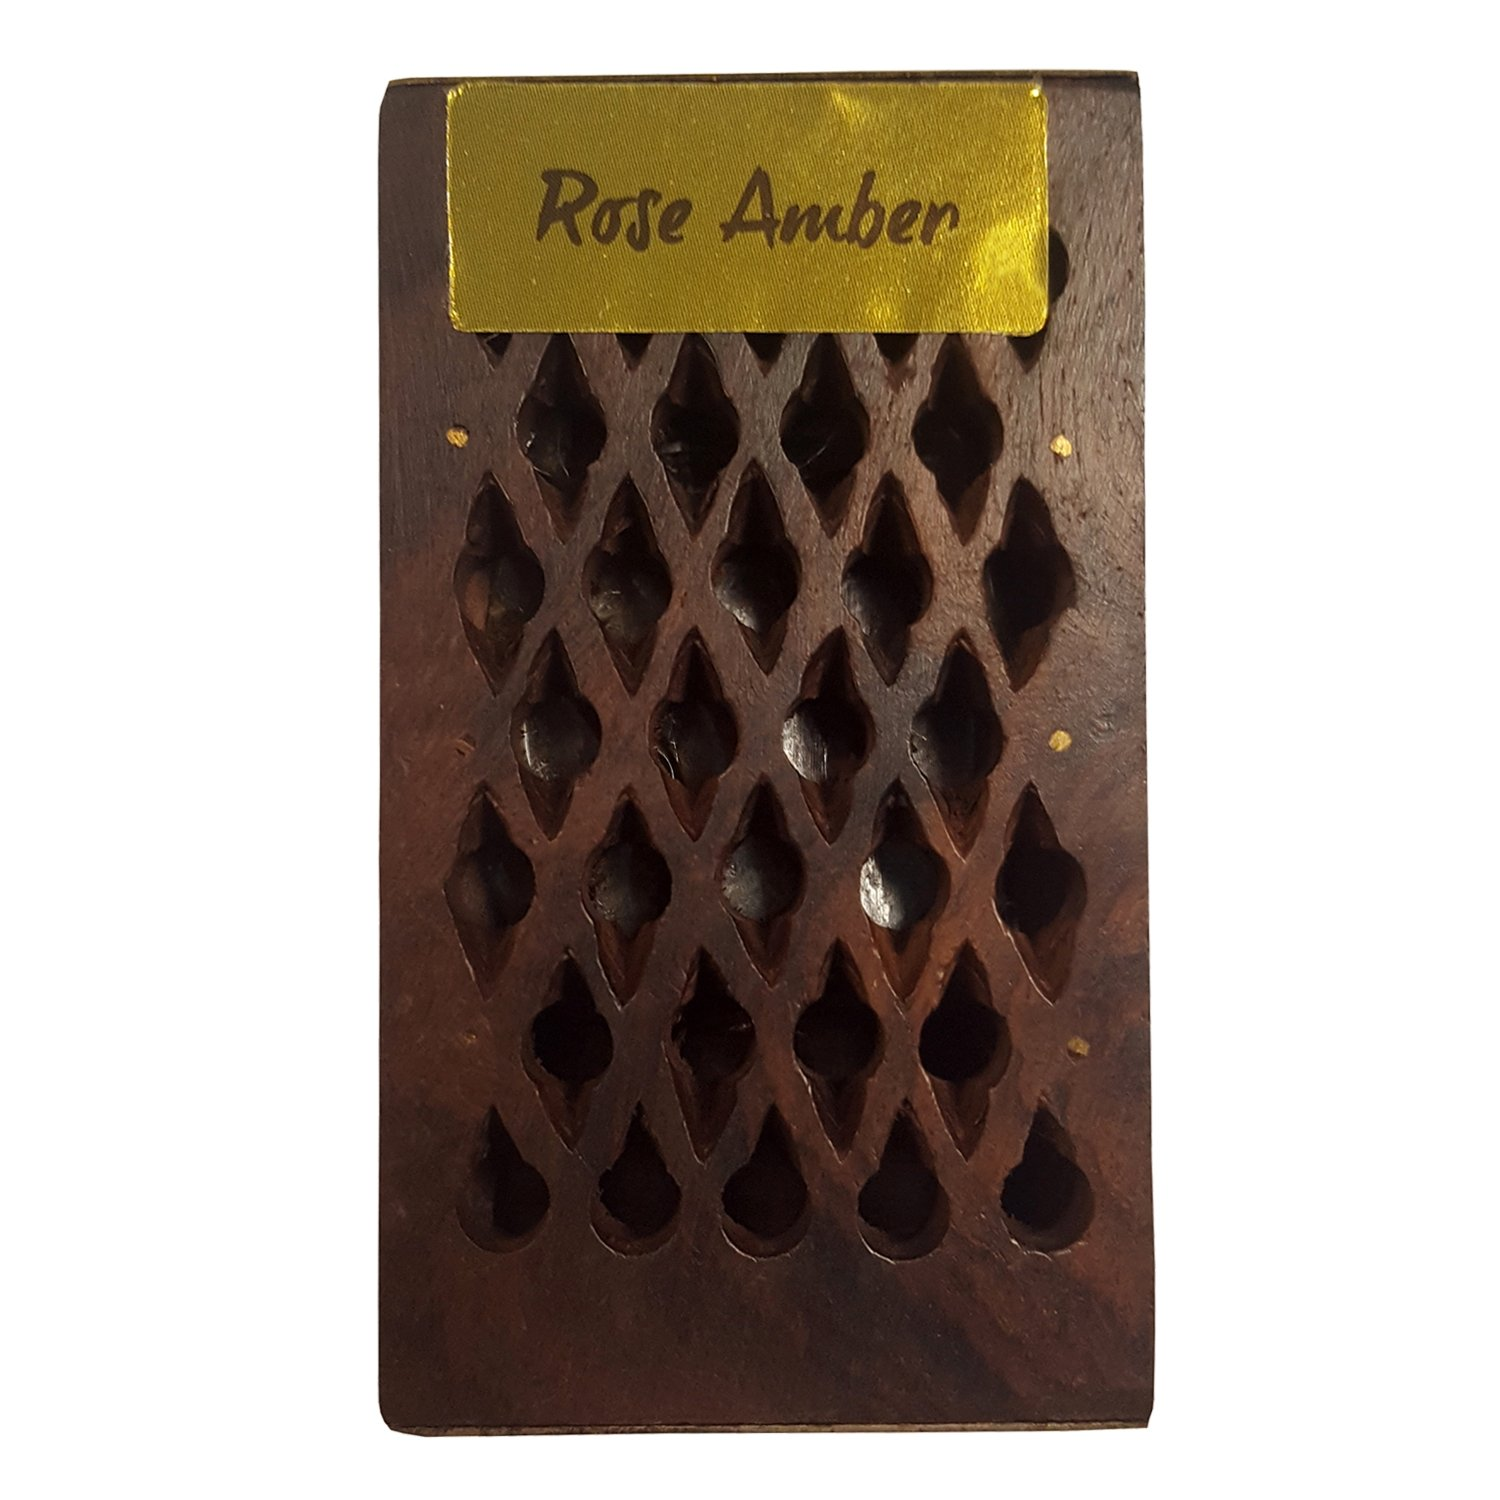 FindSomethingDifferent Incense Resin Rose/Amber in a Decorative Wooden Box Find Something Different 9170263